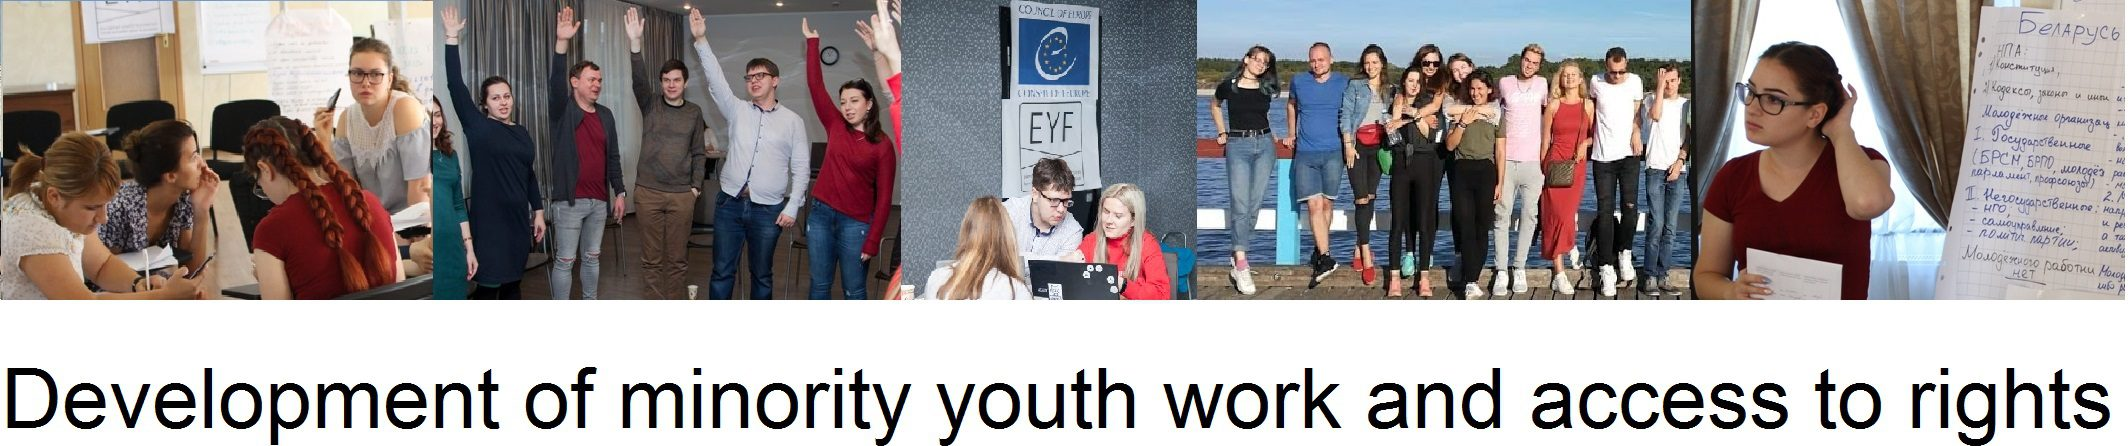 Development of minority youth work and access to rights